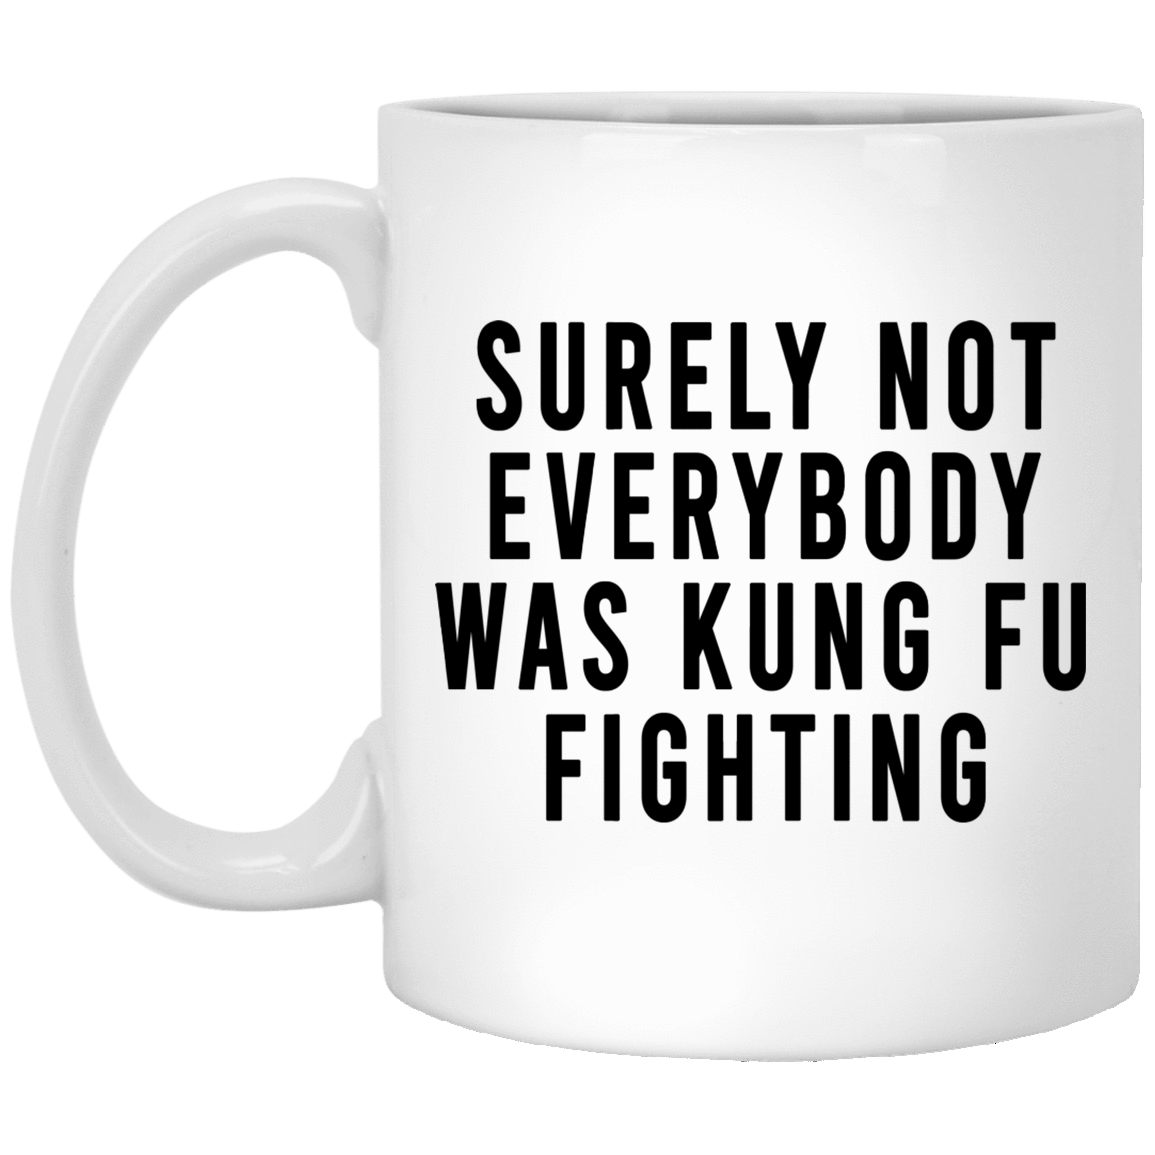 Surely Not Everybody Was Kung Fu Fighting Mug 1005-9786-88282880-47417 - Tee Ript